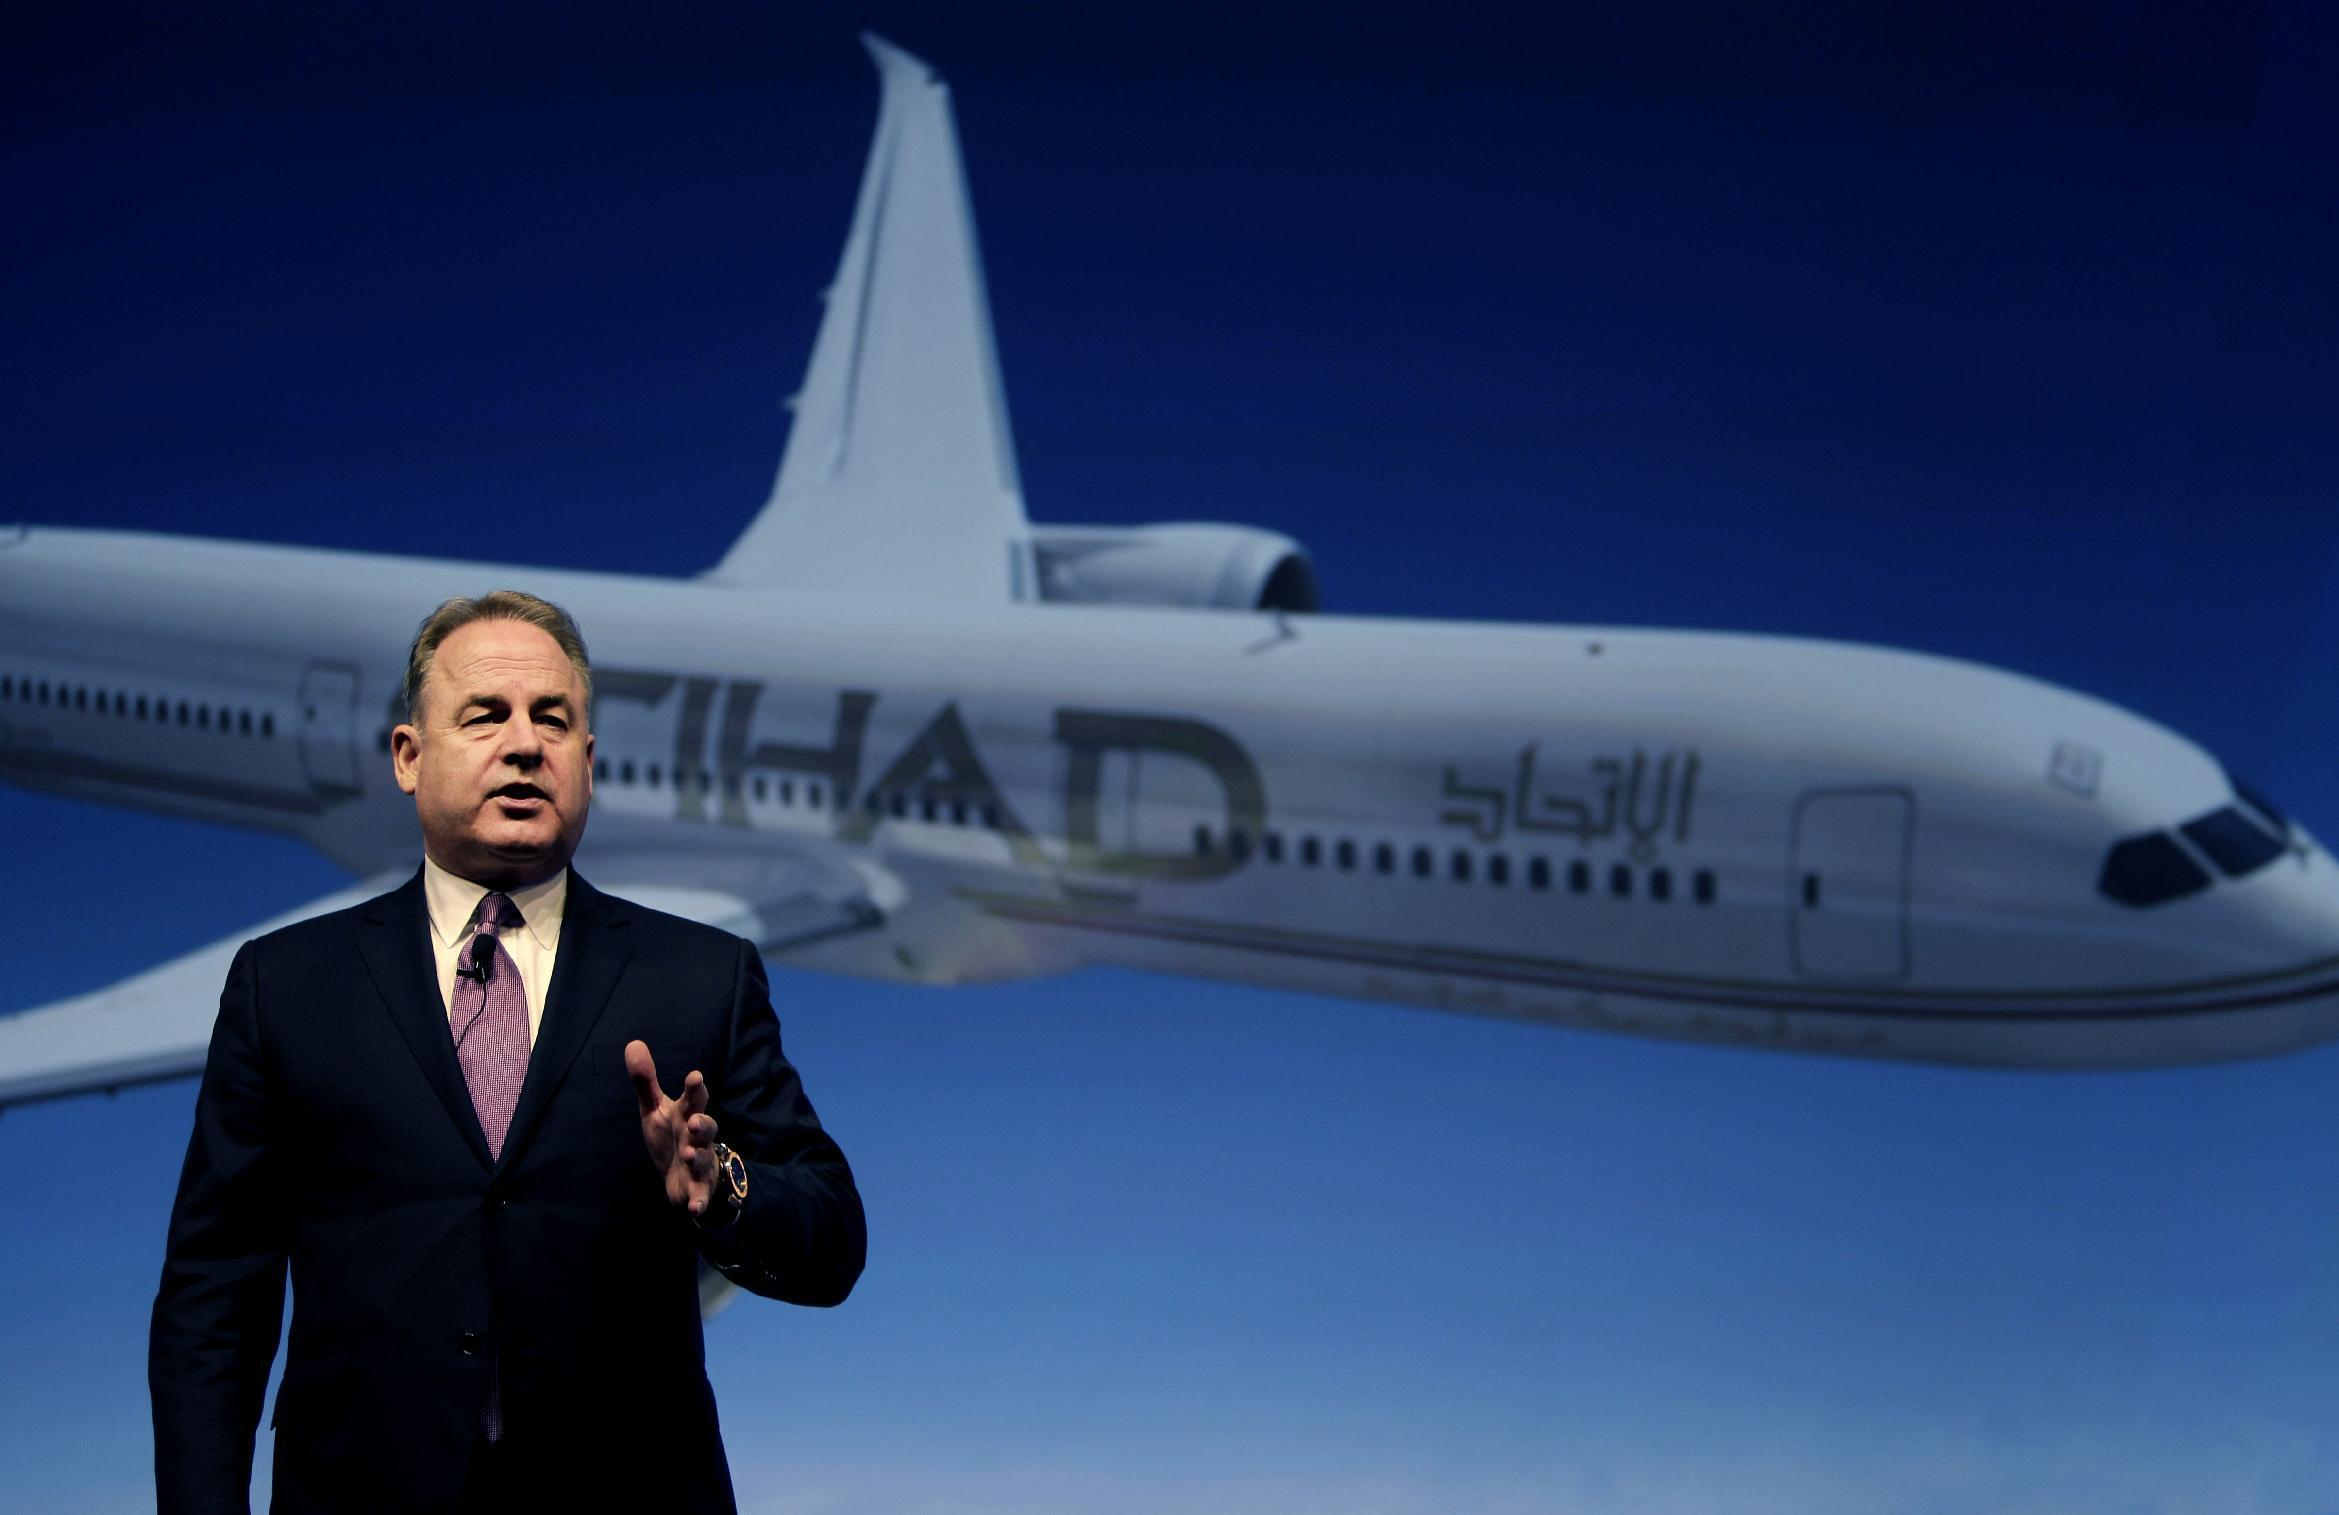 Etihad Airways boss who led acquisition strategy on way out